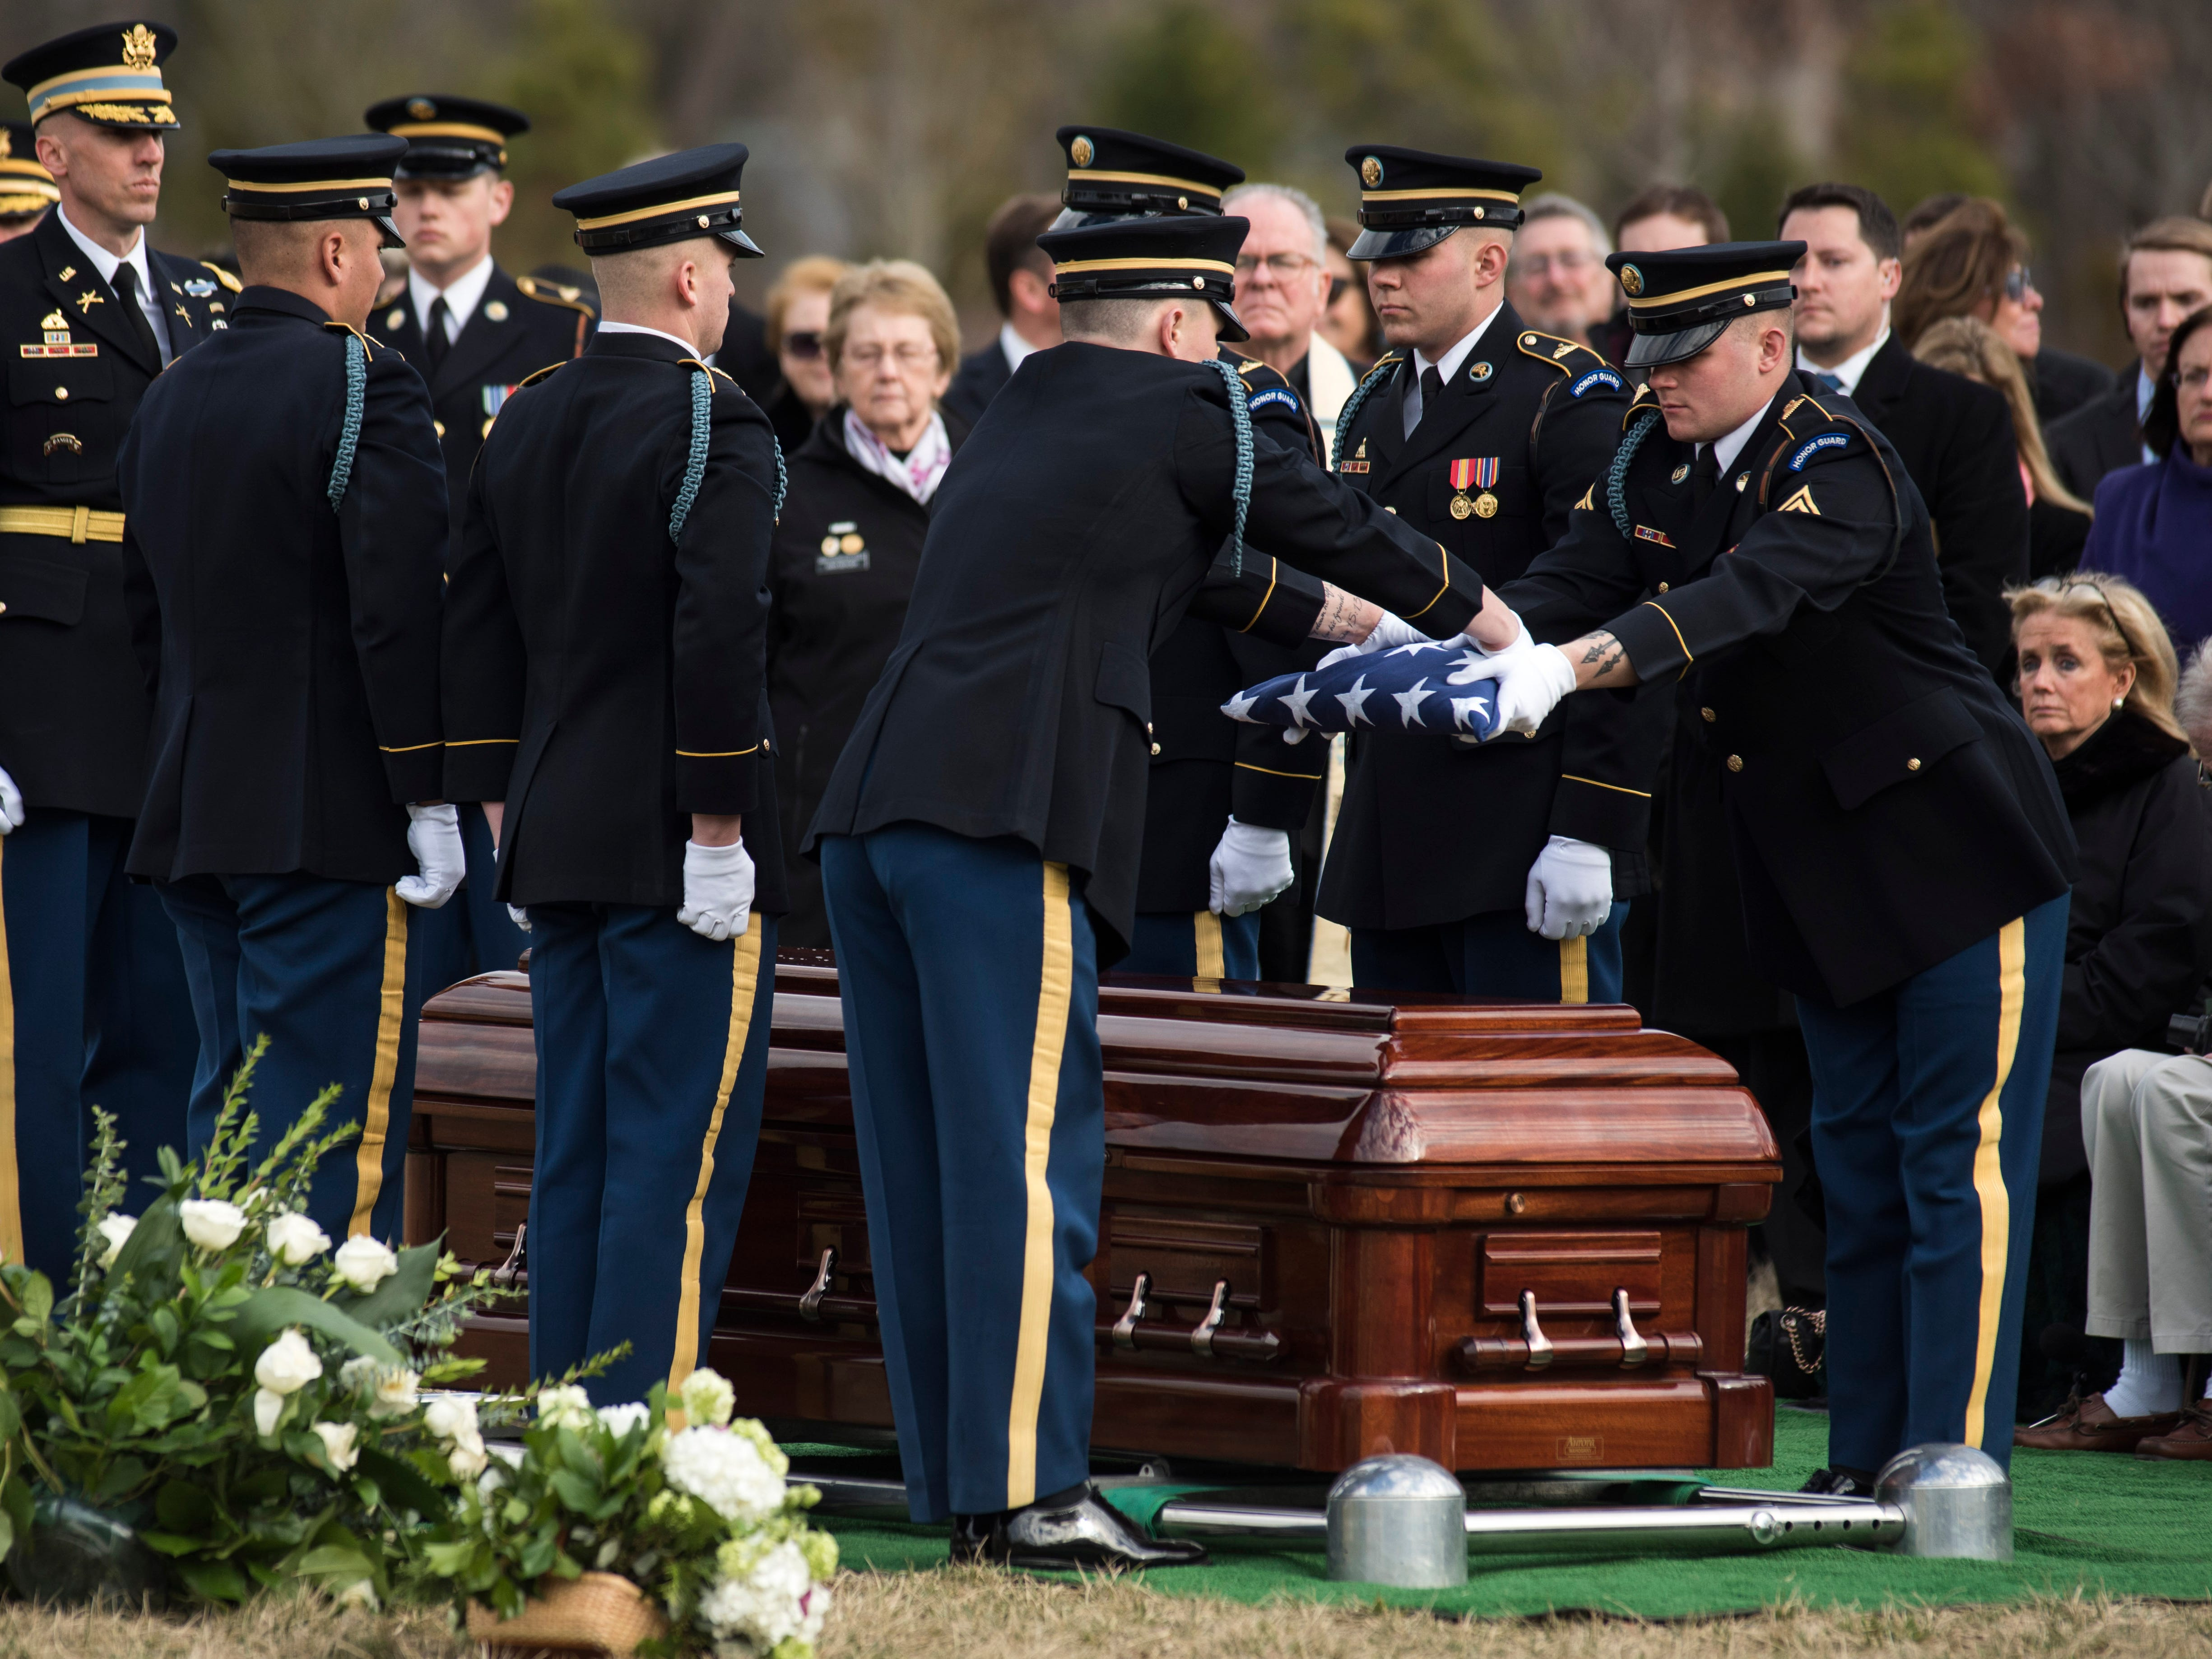 Honor guard members fold the flag above the casket of former Rep. John Dingell, D-Mich. during burial services at Arlington National Cemetery on Friday, Feb. 15, 2019 in Arlington, Va. At right is Rep. Debbie Dingell, D-Mich., the wife of John Dingell.